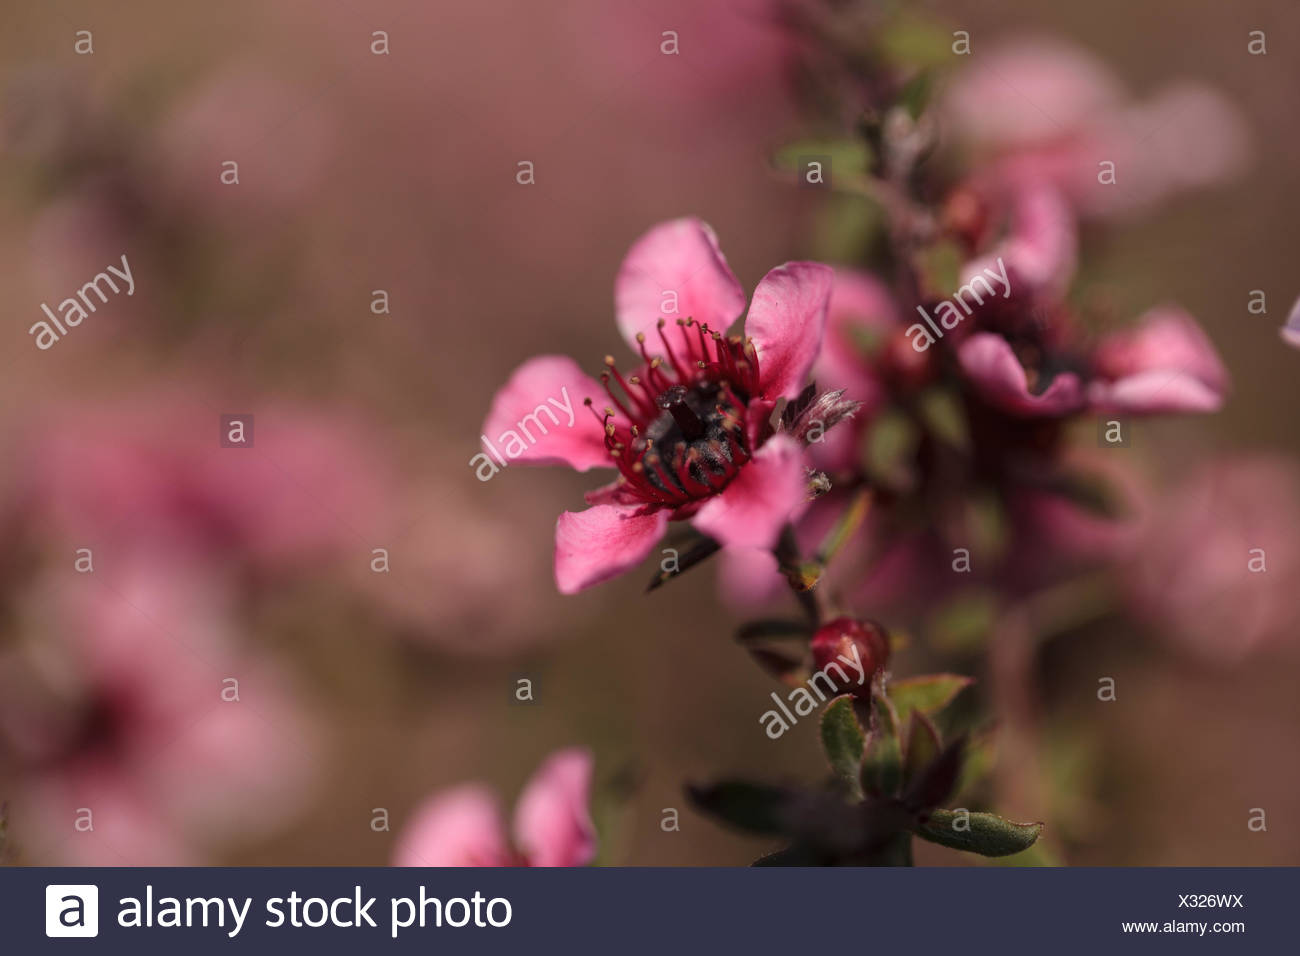 Tiny Pink Flowers On A Leptospermum Tea Tree Bush Growing In A